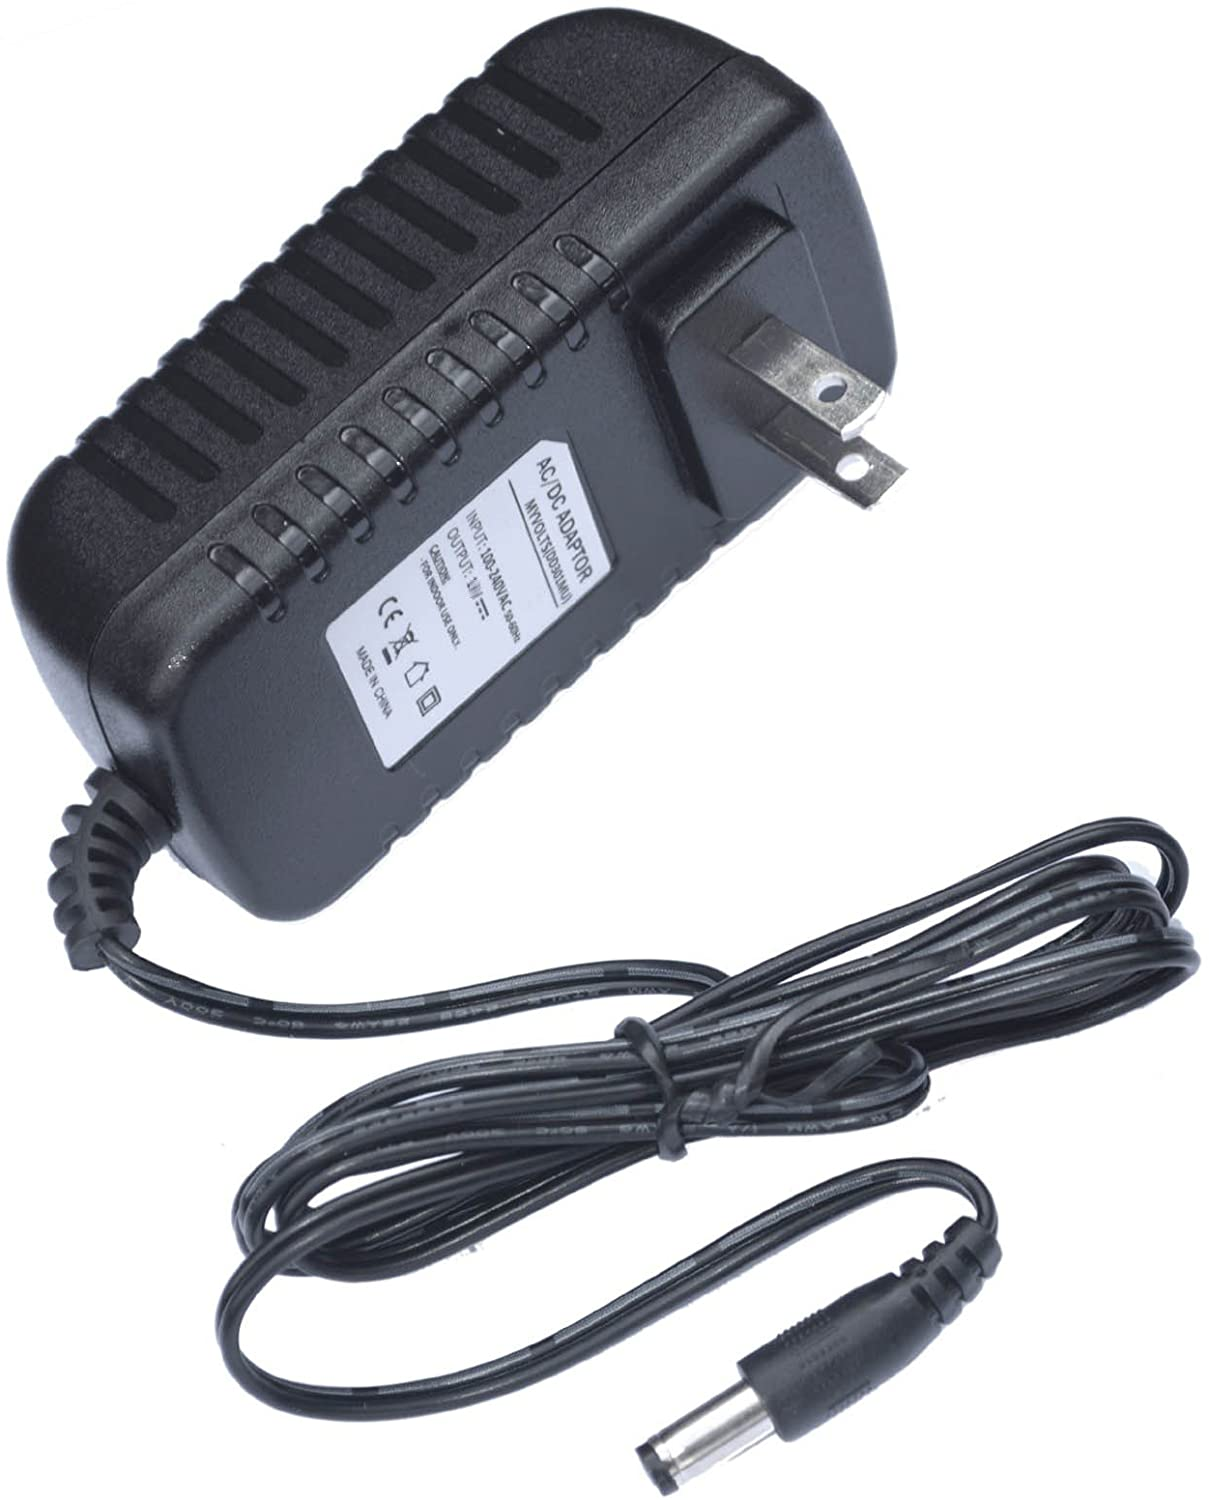 MyVolts 12V Power Supply Adaptor Compatible with Yamaha PSR-4500 Keyboard - US Plug